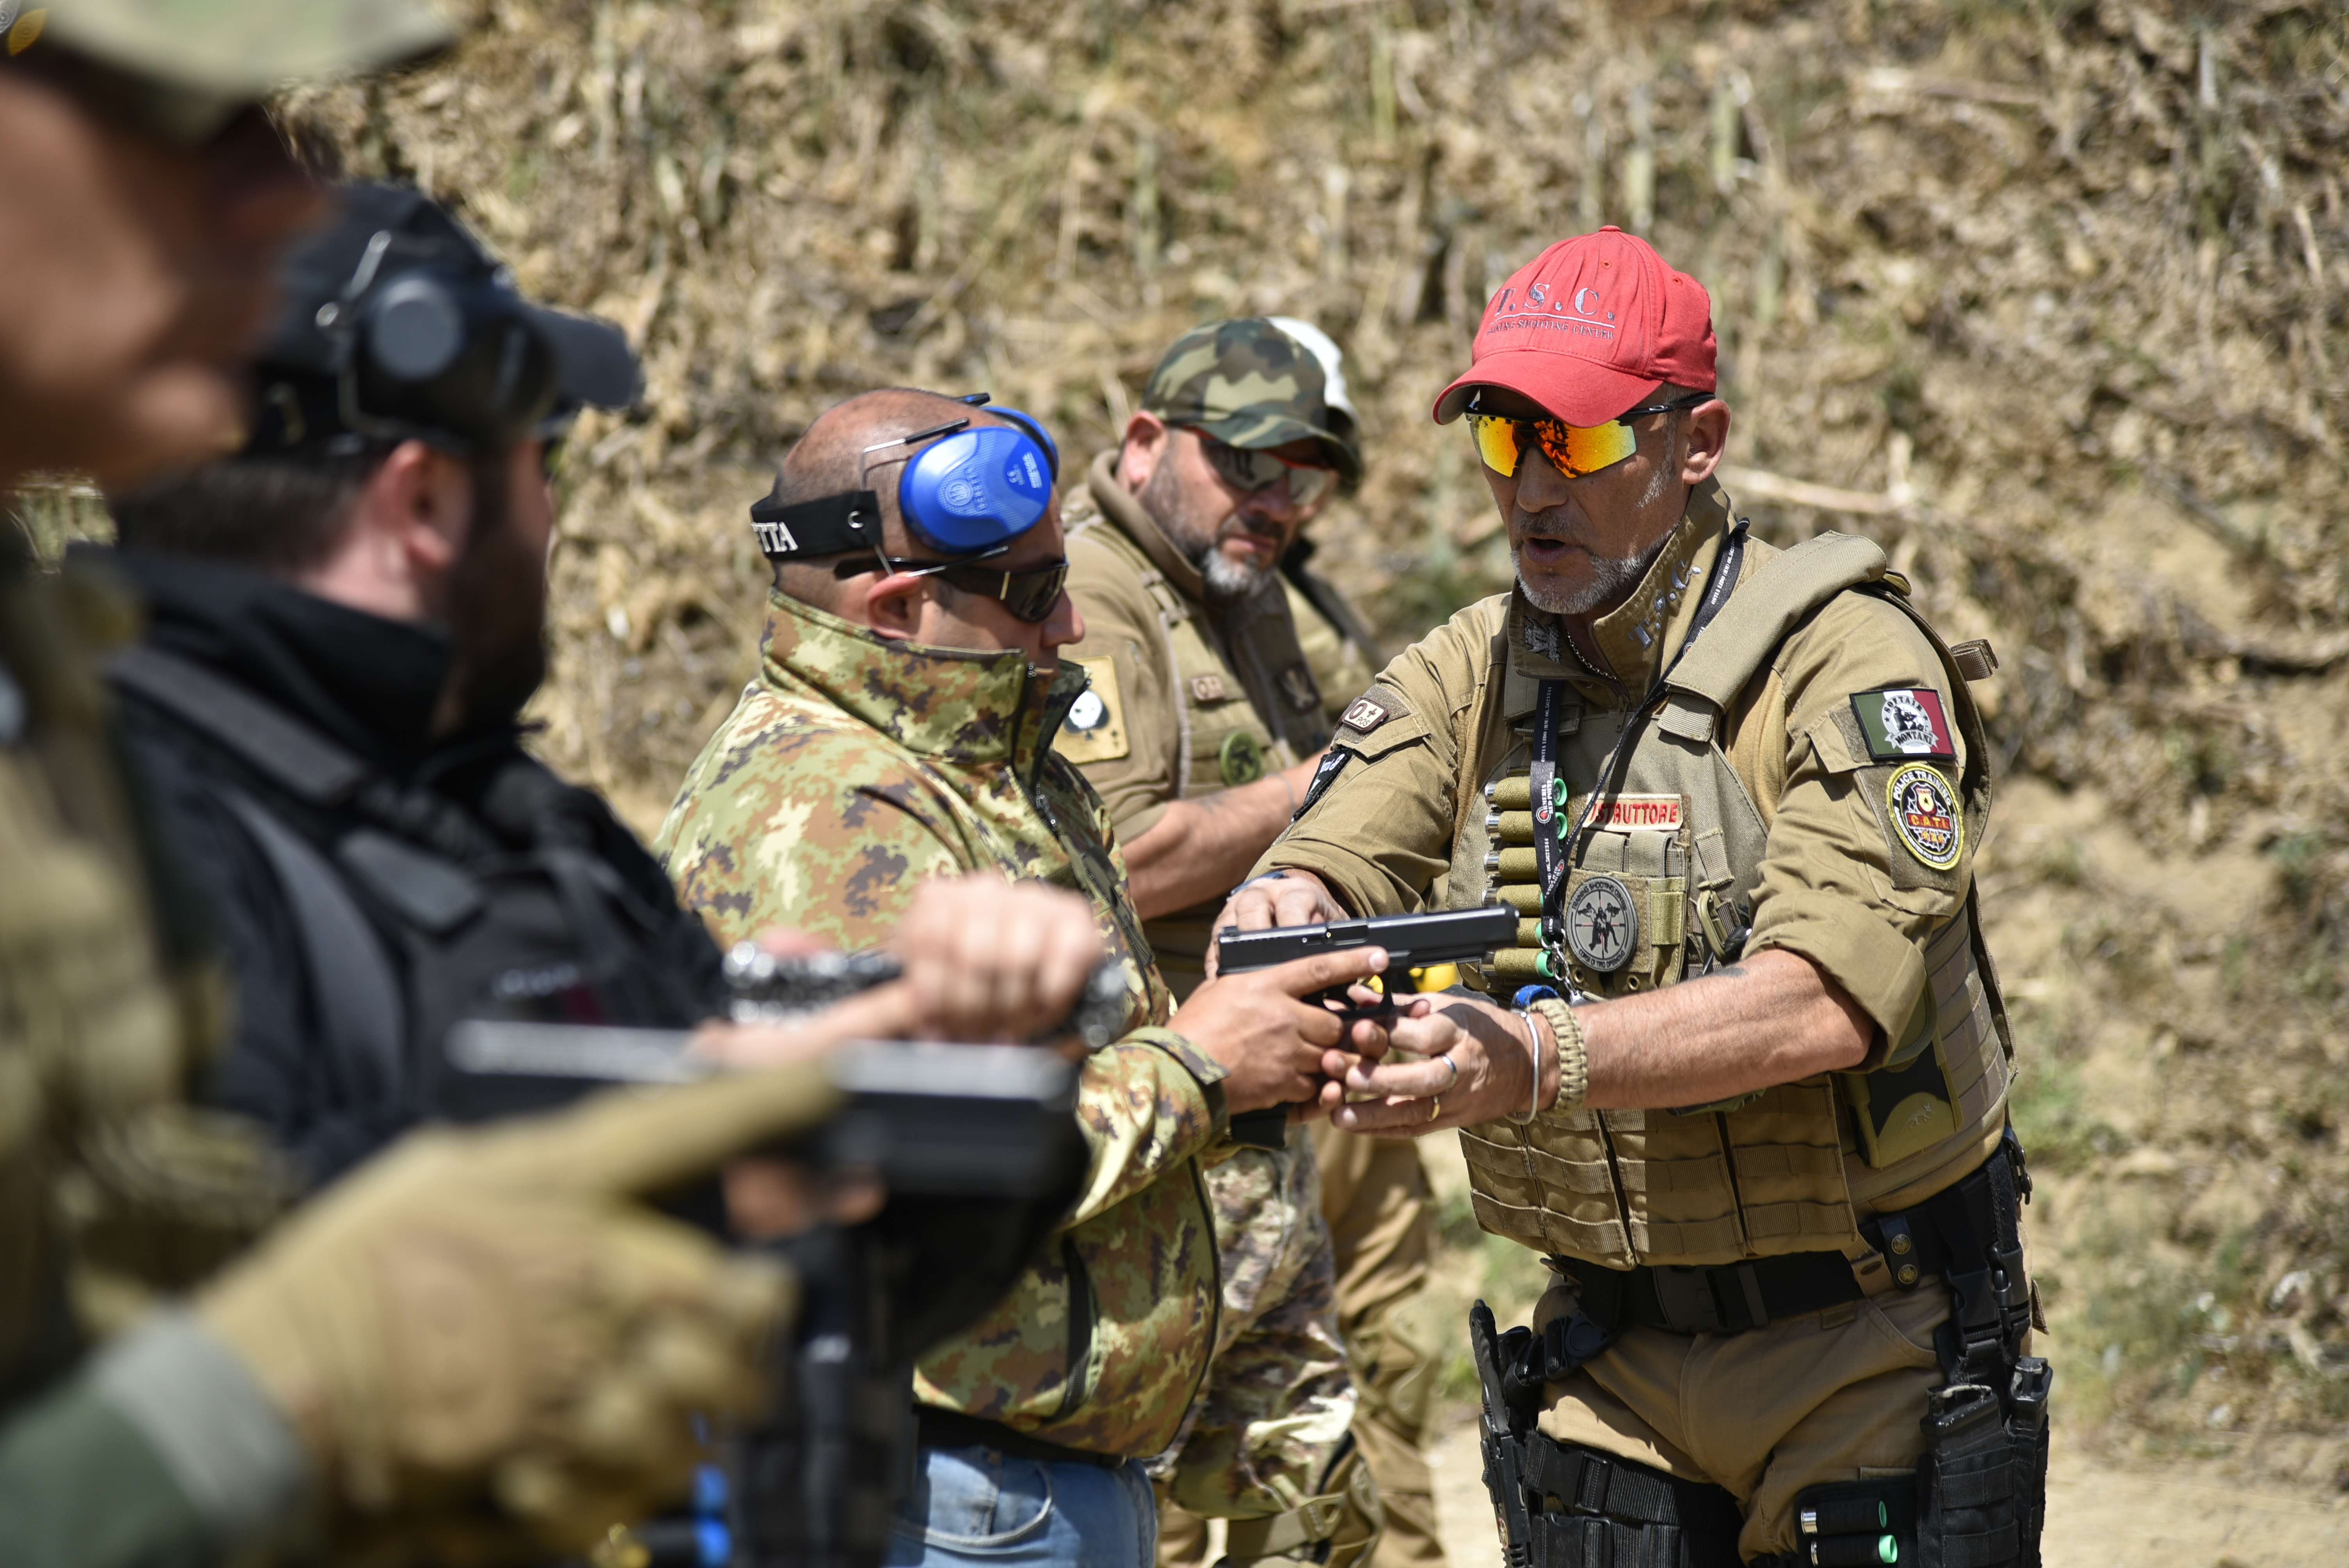 GUNSweek.com sul campo con la ASD Training Shooting Center